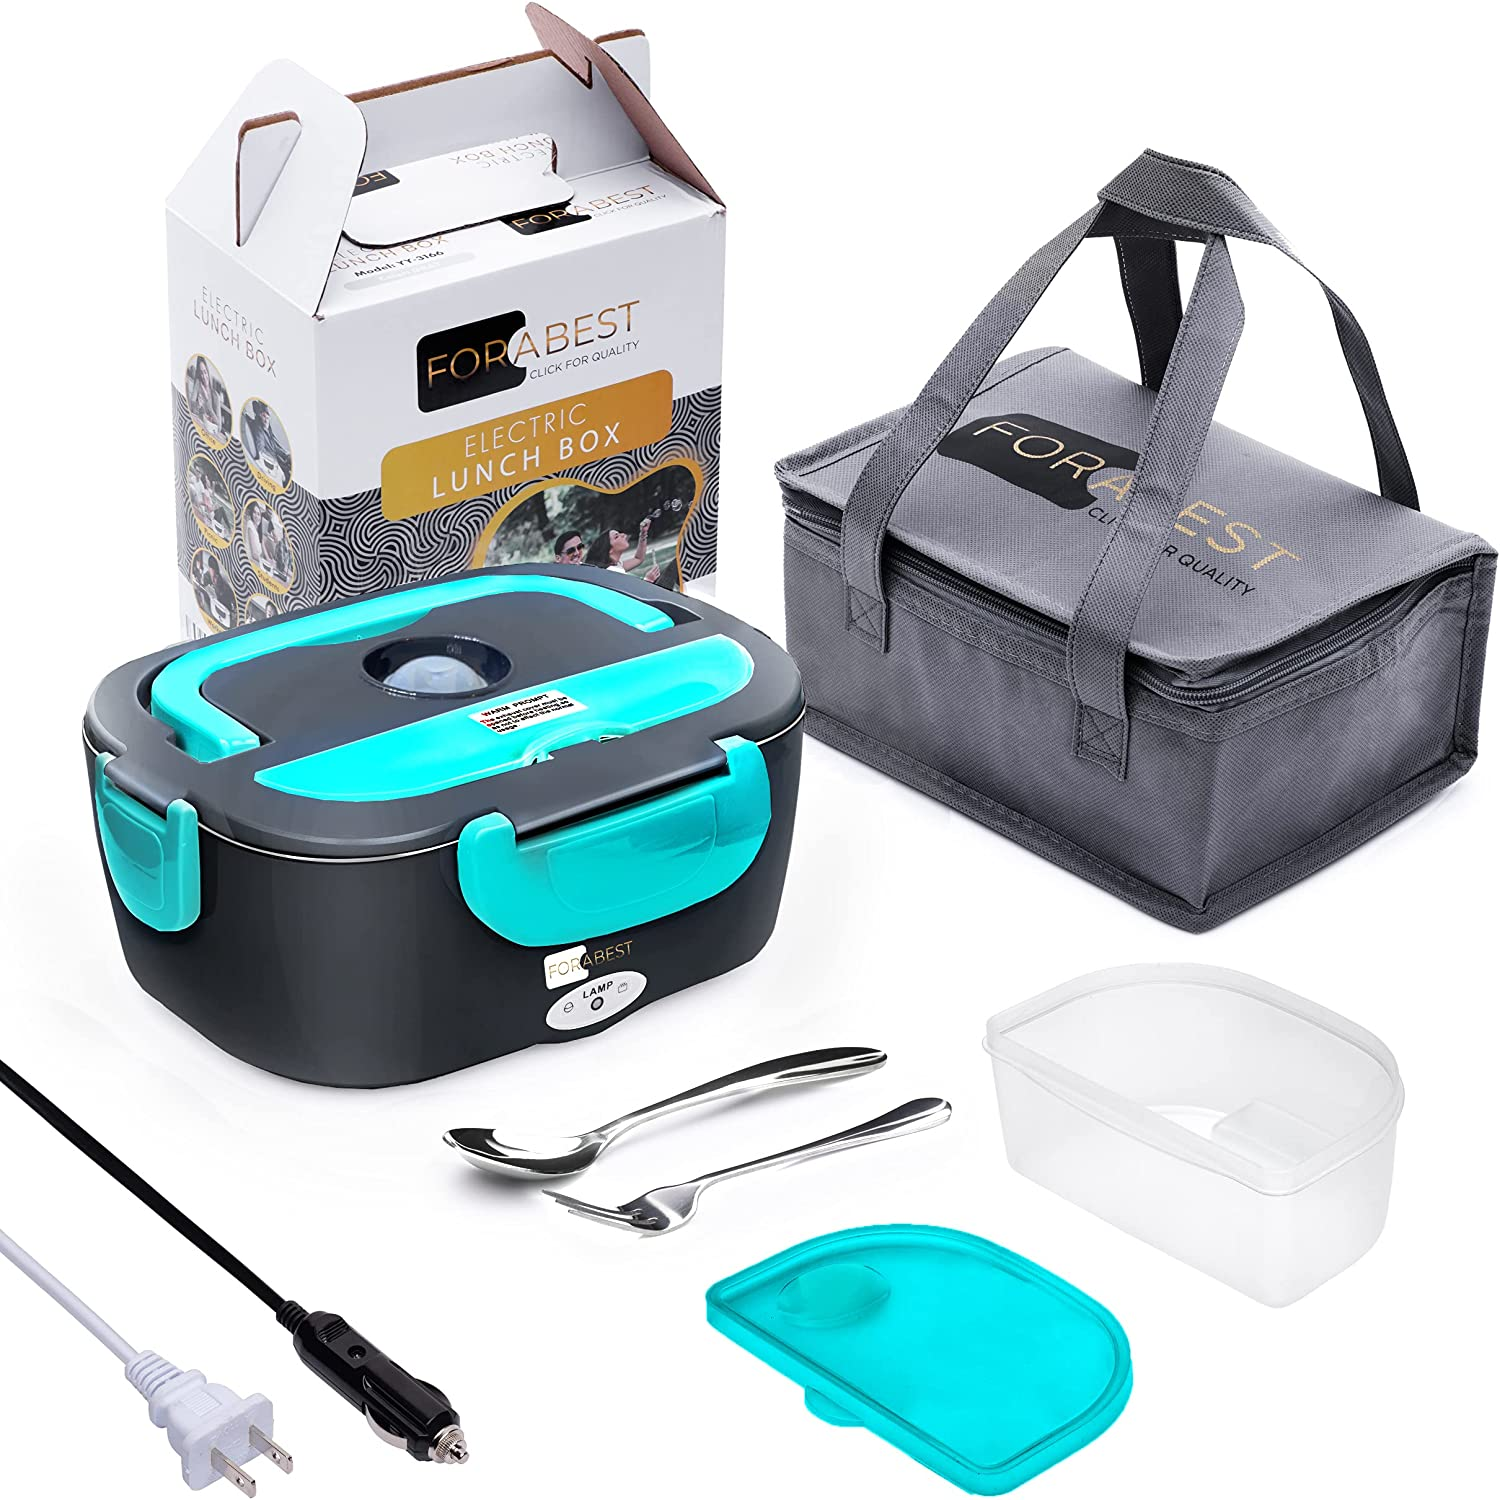 FORABEST 2-In-1 Portable Food Warmer Lunch Box